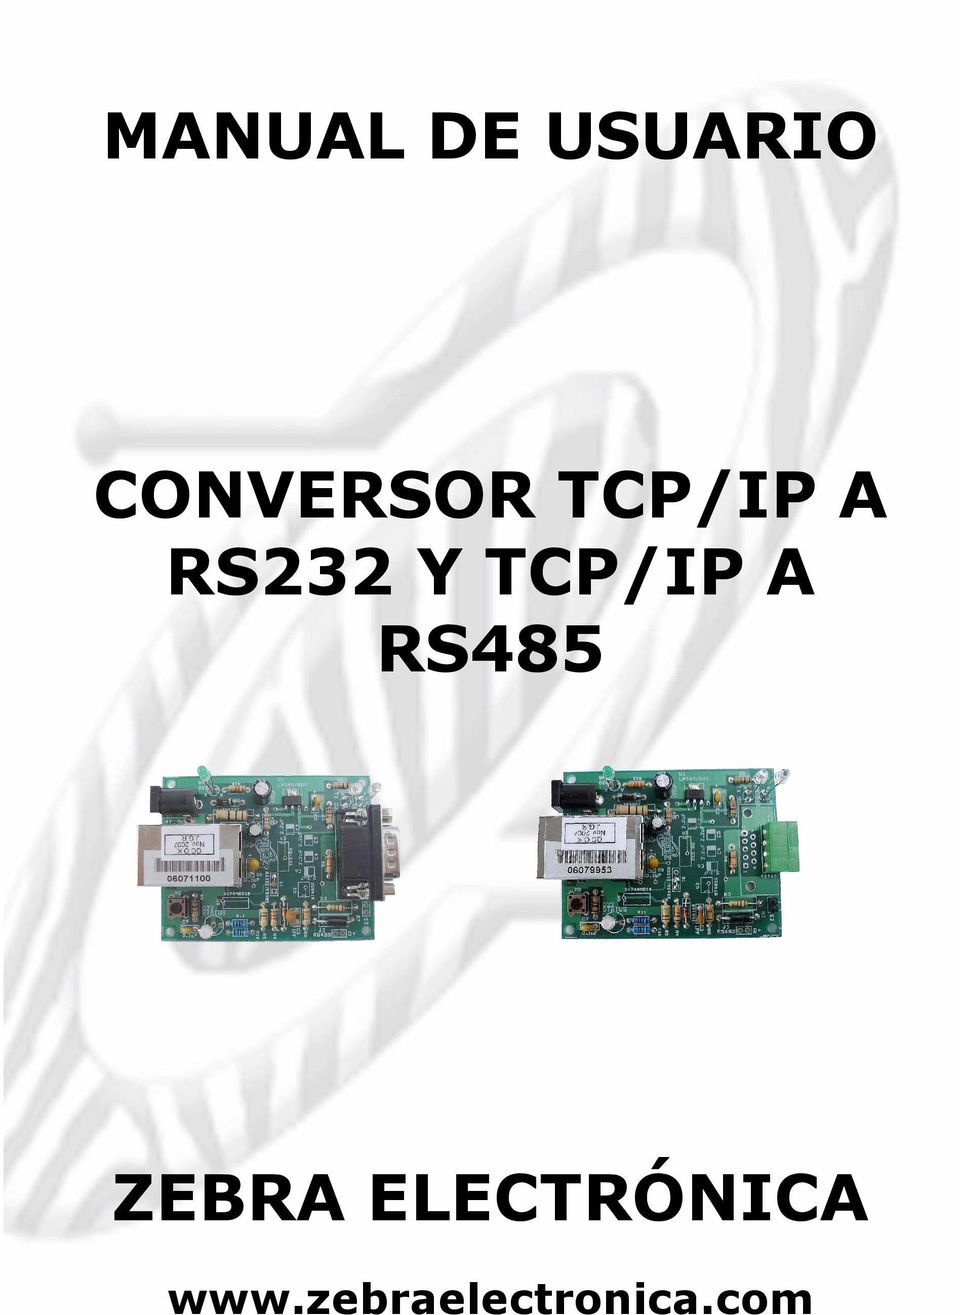 RS232 Y TCP/IP A